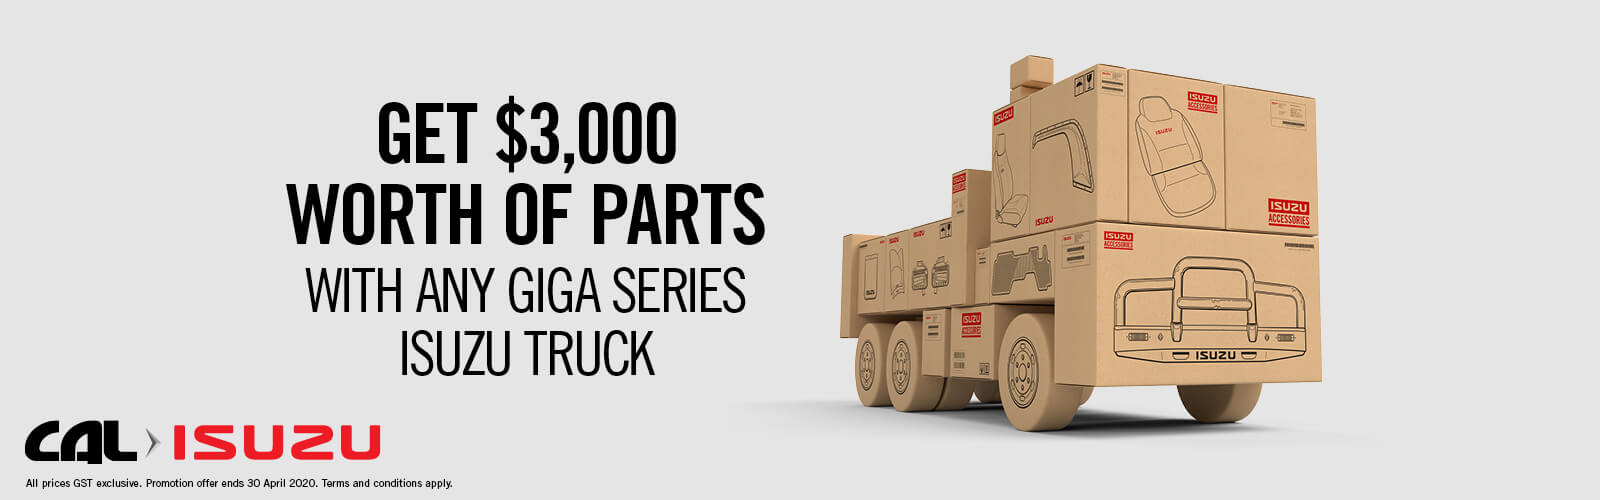 Get $3,000 Worth of Parts with Any Giga Series Isuzu Truck